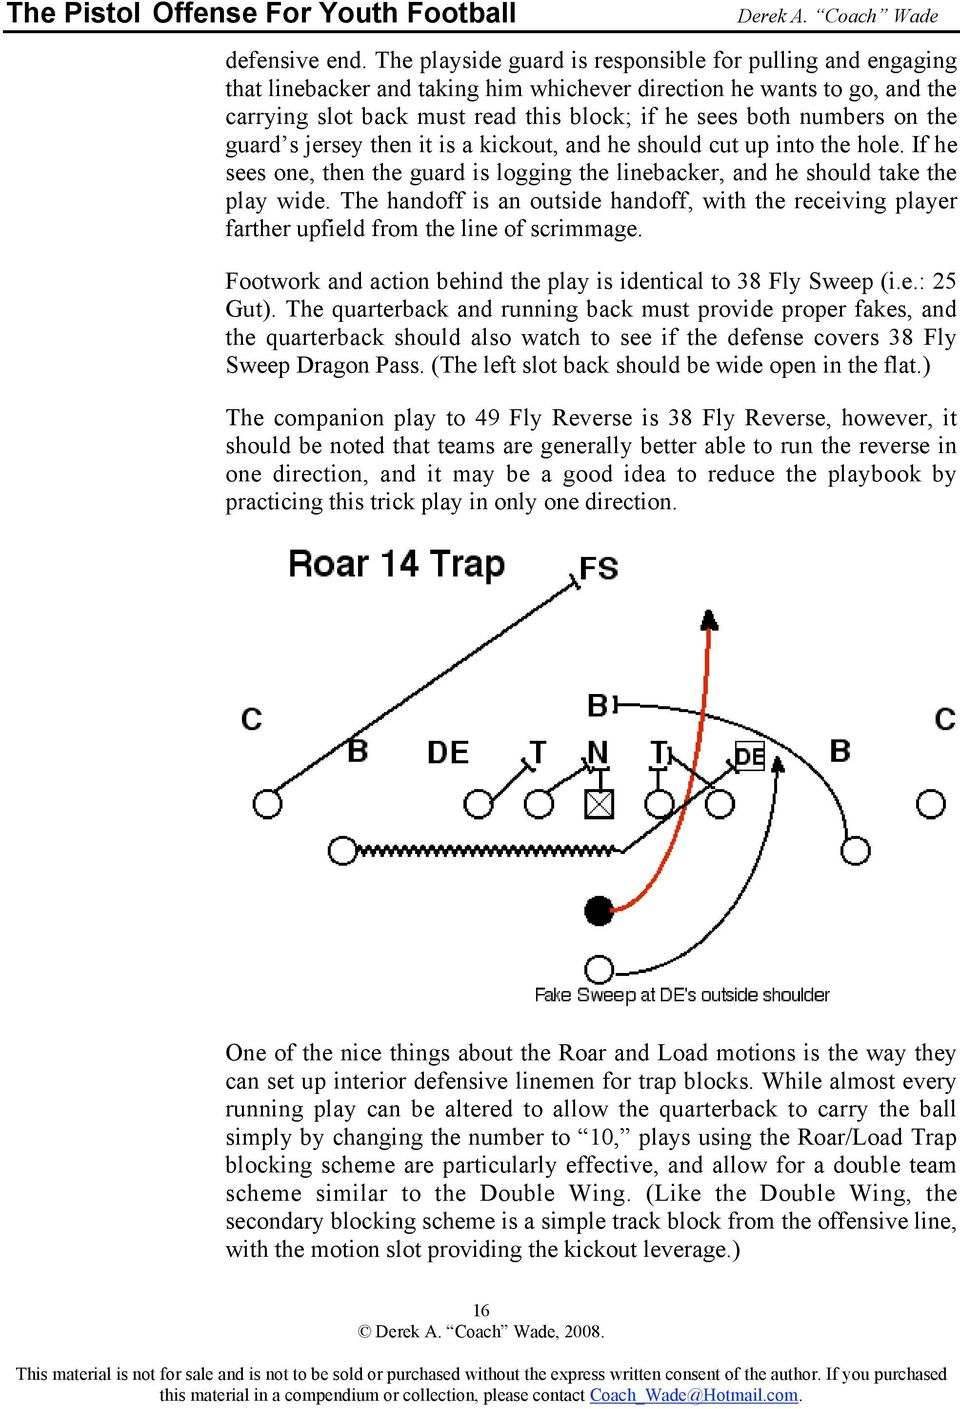 The Pistol Offense For Youth Football Pdf Free Download